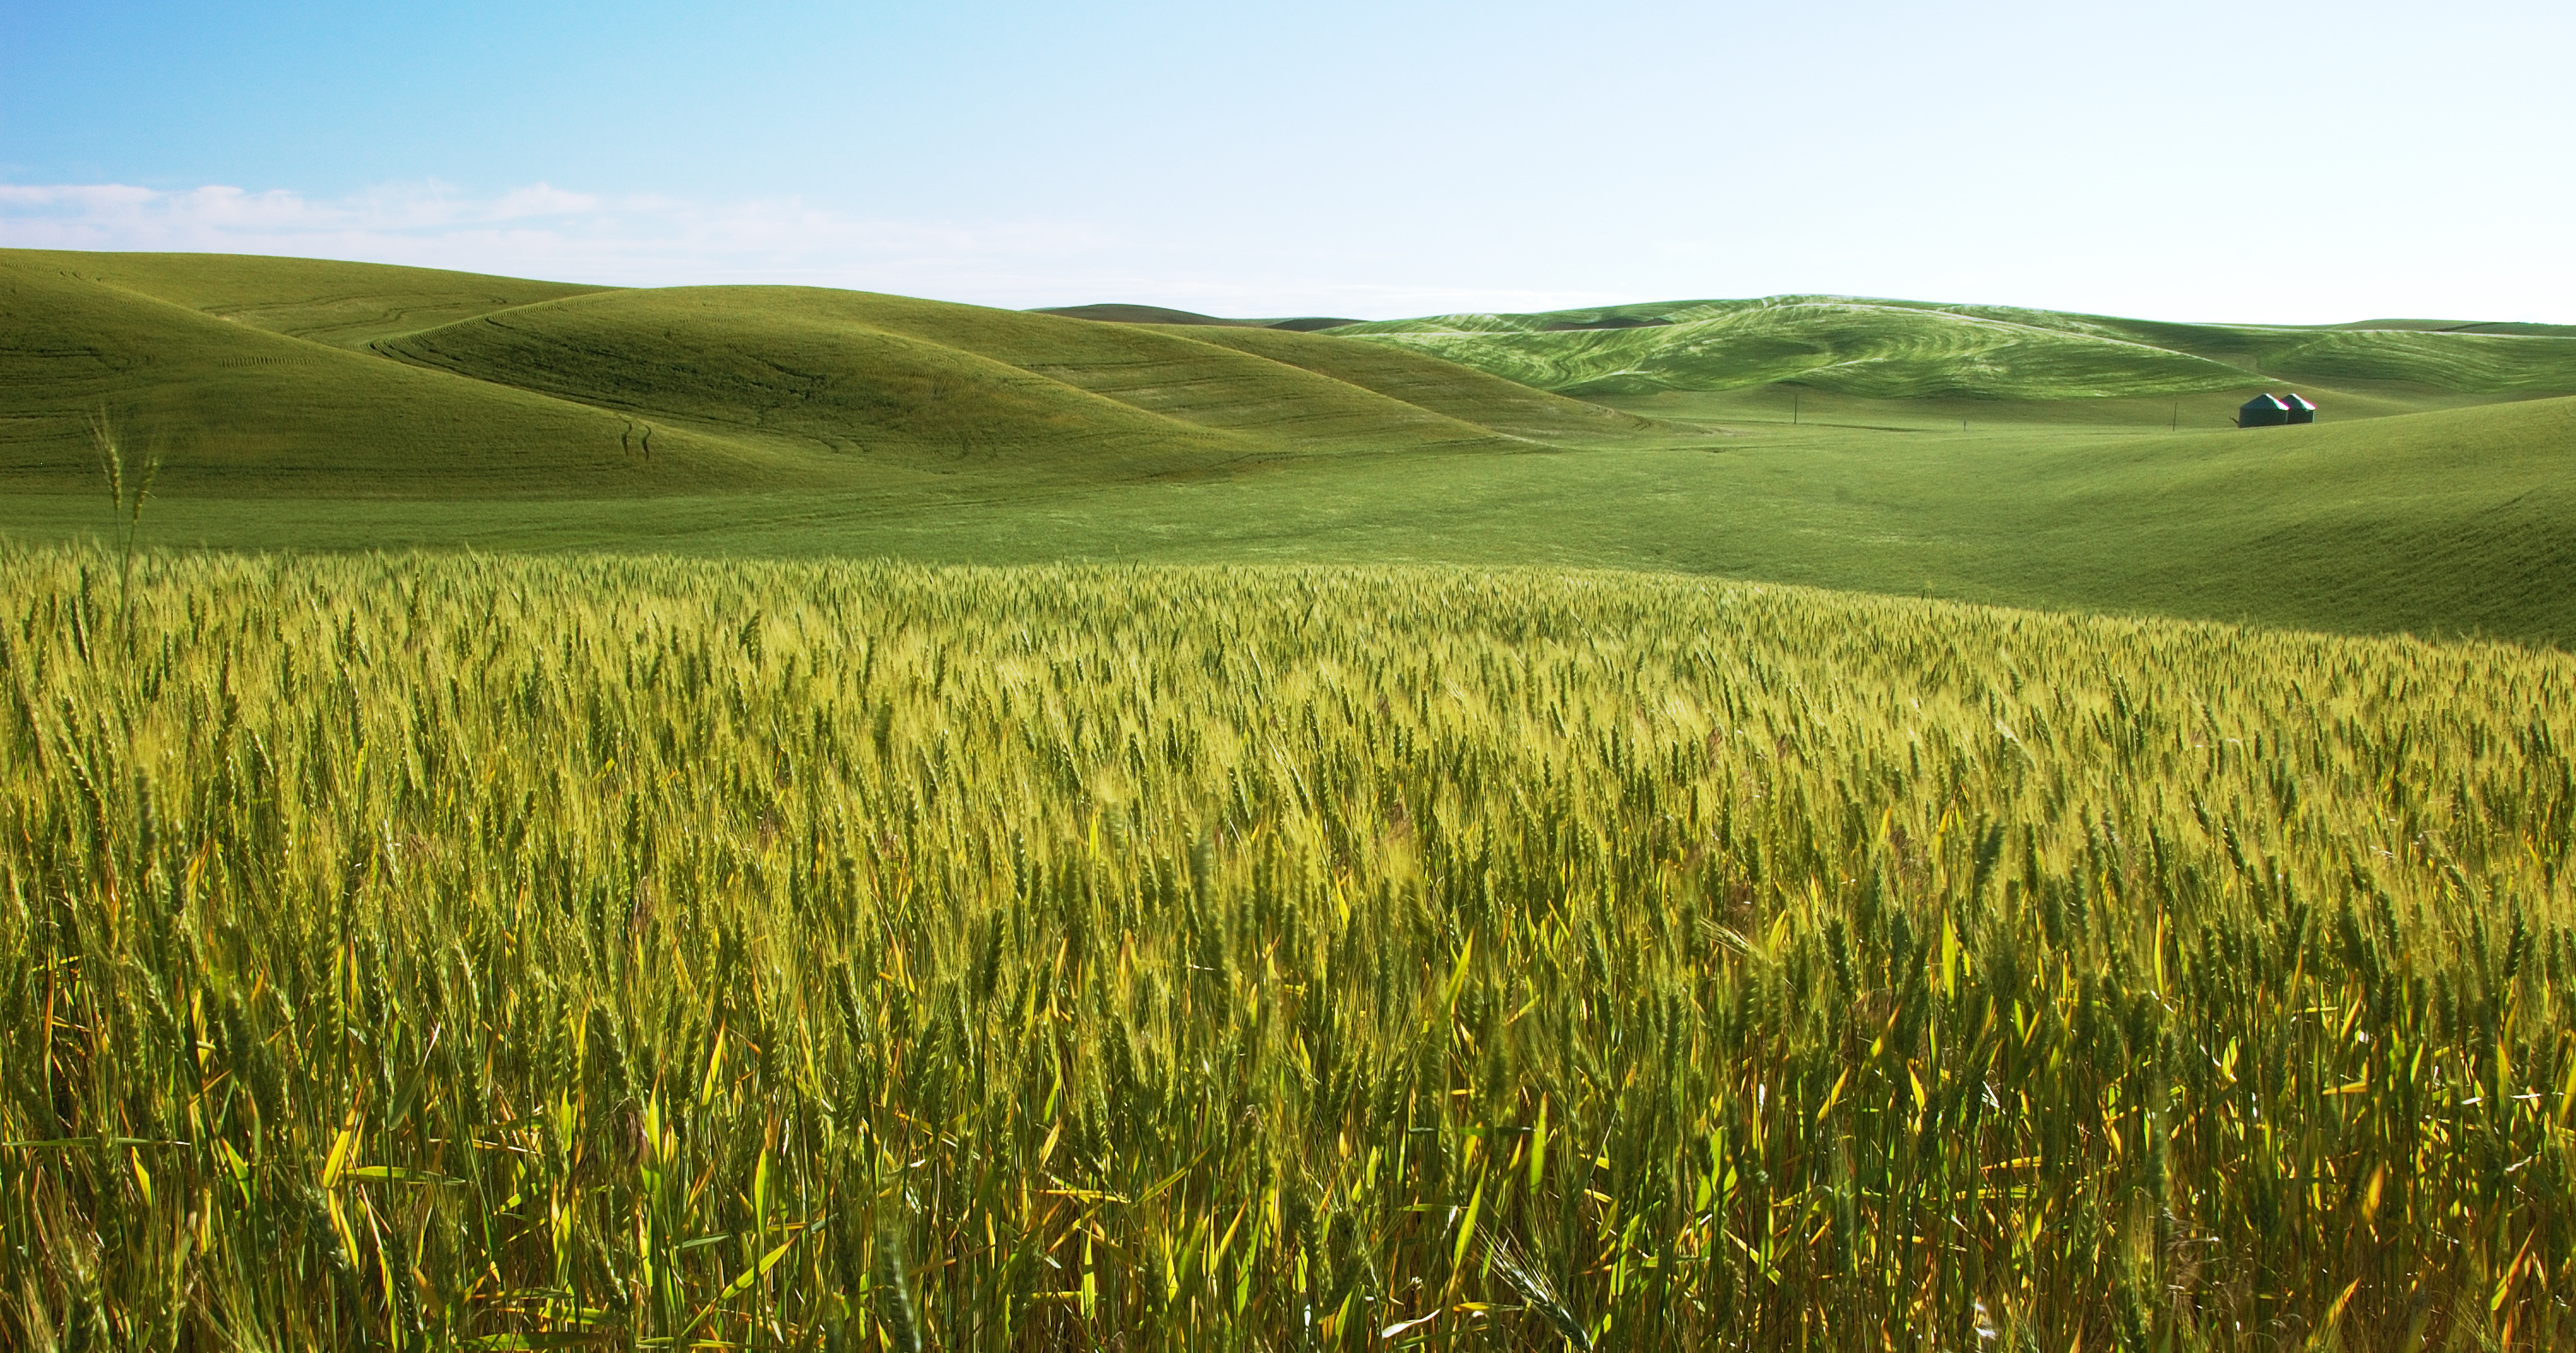 Golden fields of wheat that stretch from the foreground to the middle, set against rolling green hills and a blue sky